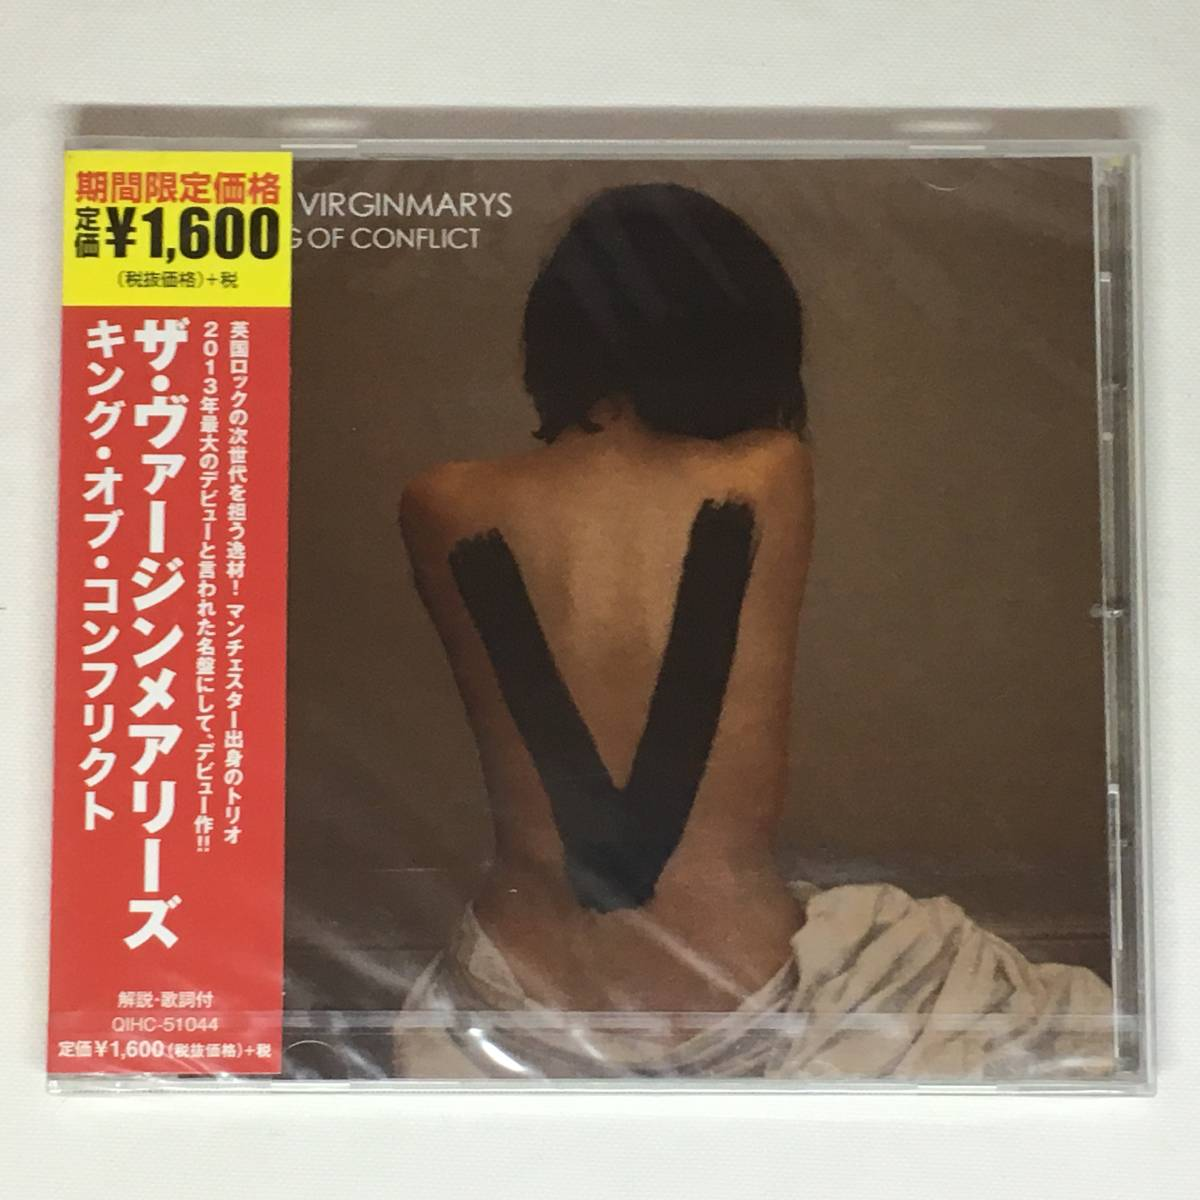 2-14A15 【未開封CD】 ザ・ヴァージンメアリーズ / キング・オブ・コンフリクト ● 国内盤 THE VIRGINMARYS KING OF CONFLICT